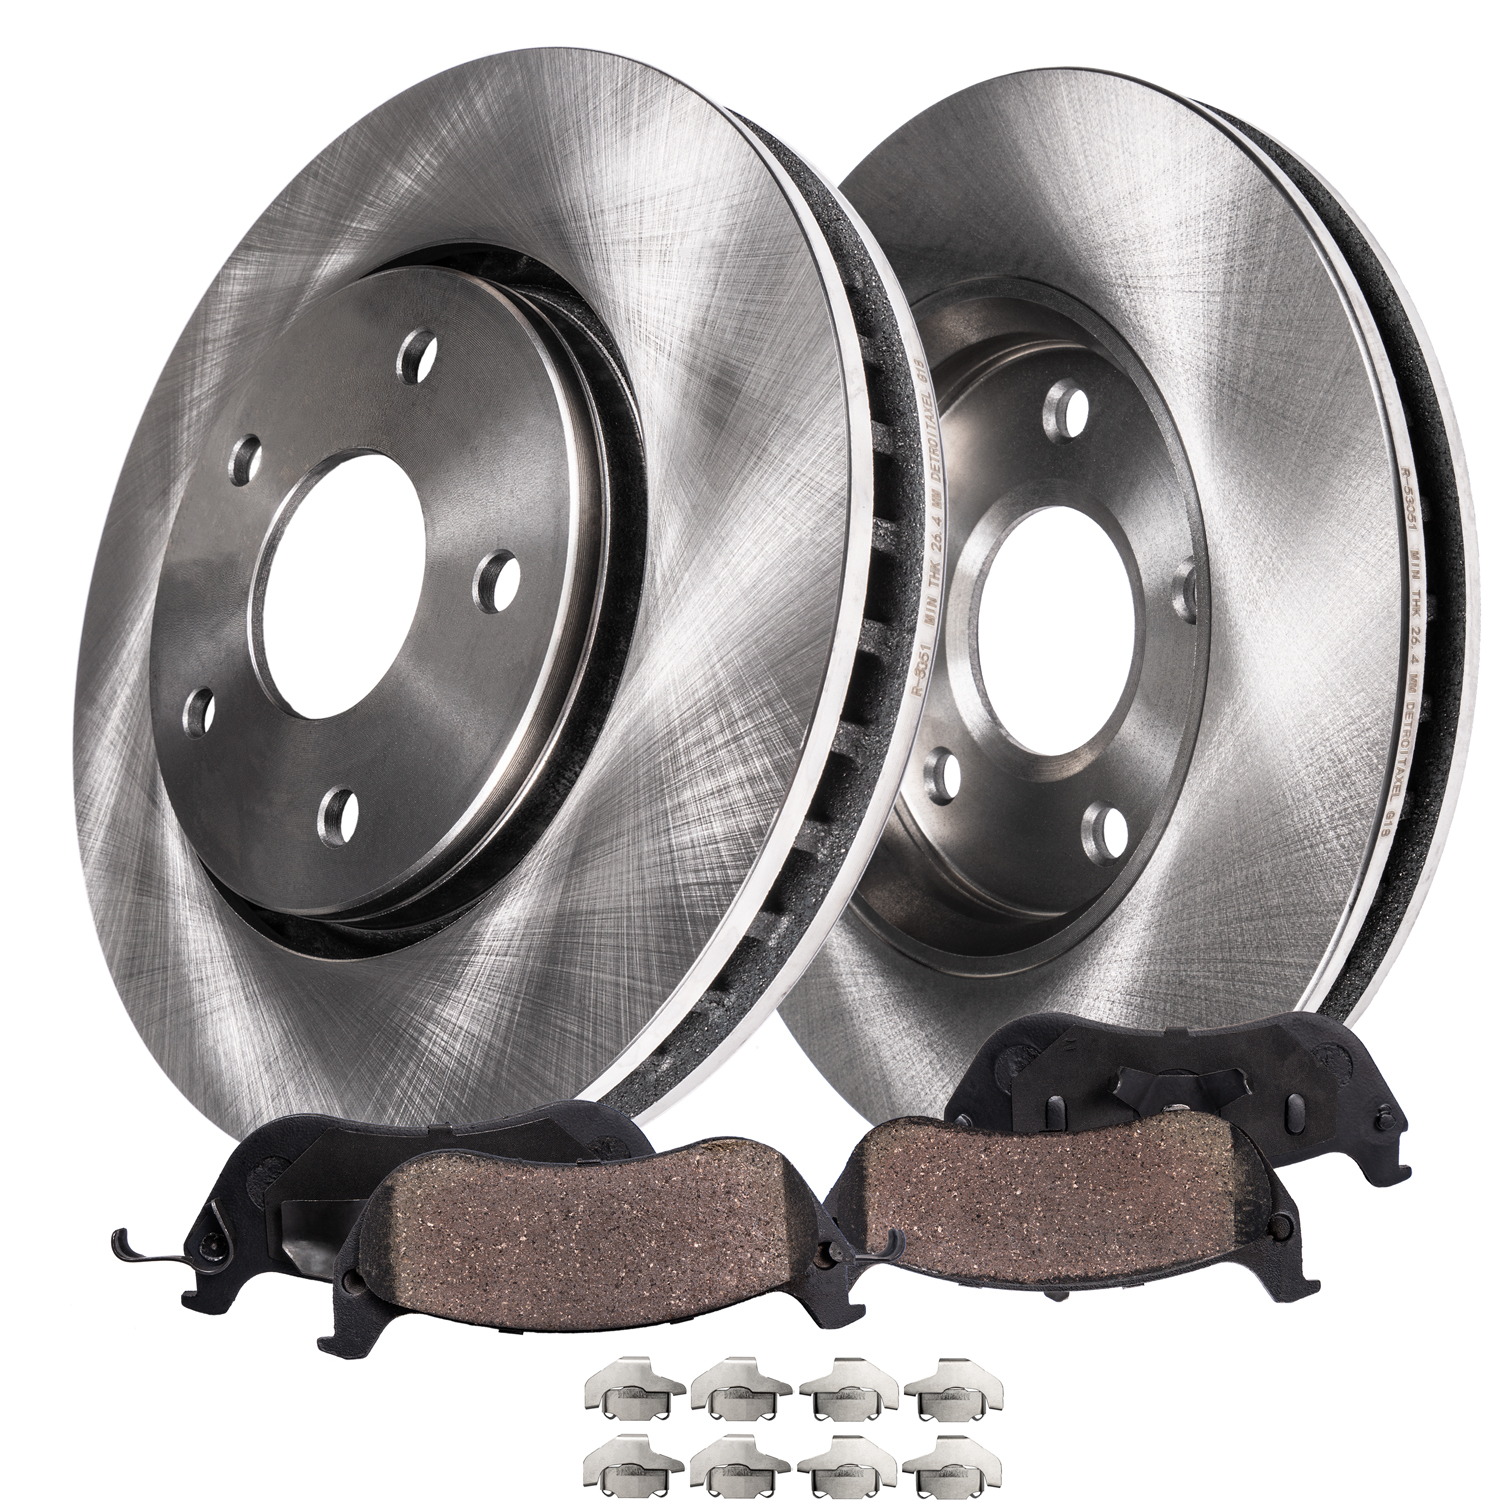 2008-2018 Toyota Avalon 2007-2017 Toyota Camry 2007-2018 Lexus ES350 SCITOO Ceramic Front Rear Disc Brake Pad Set fit for 2013-2018 Lexus ES300h